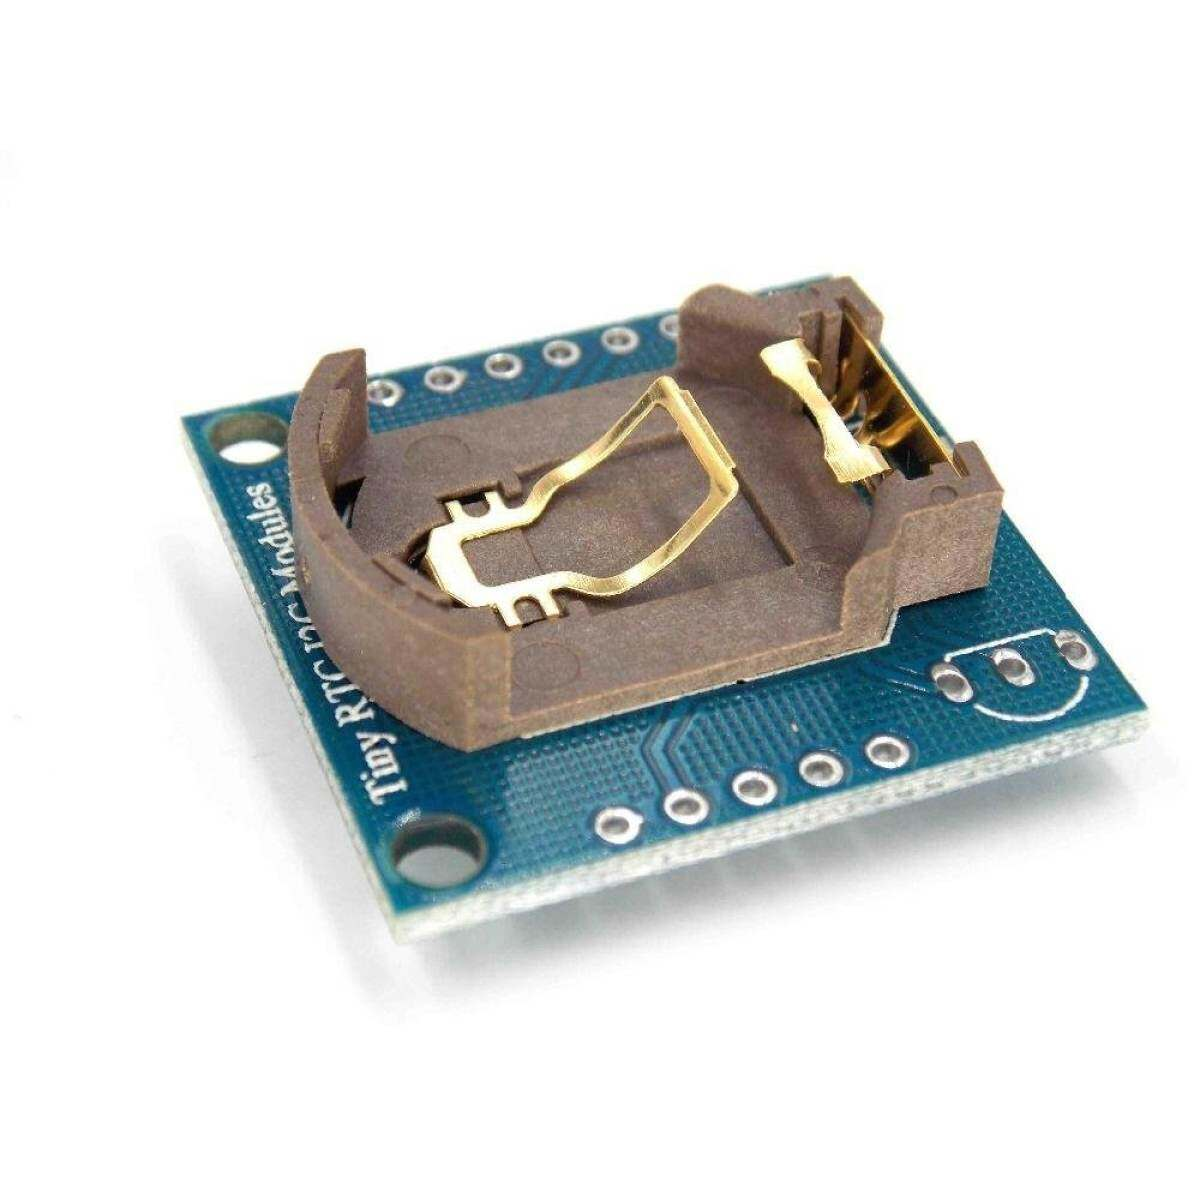 I2C RTC DS1307 AT24C32 Real Time Clock Module For AVR ARM PIC